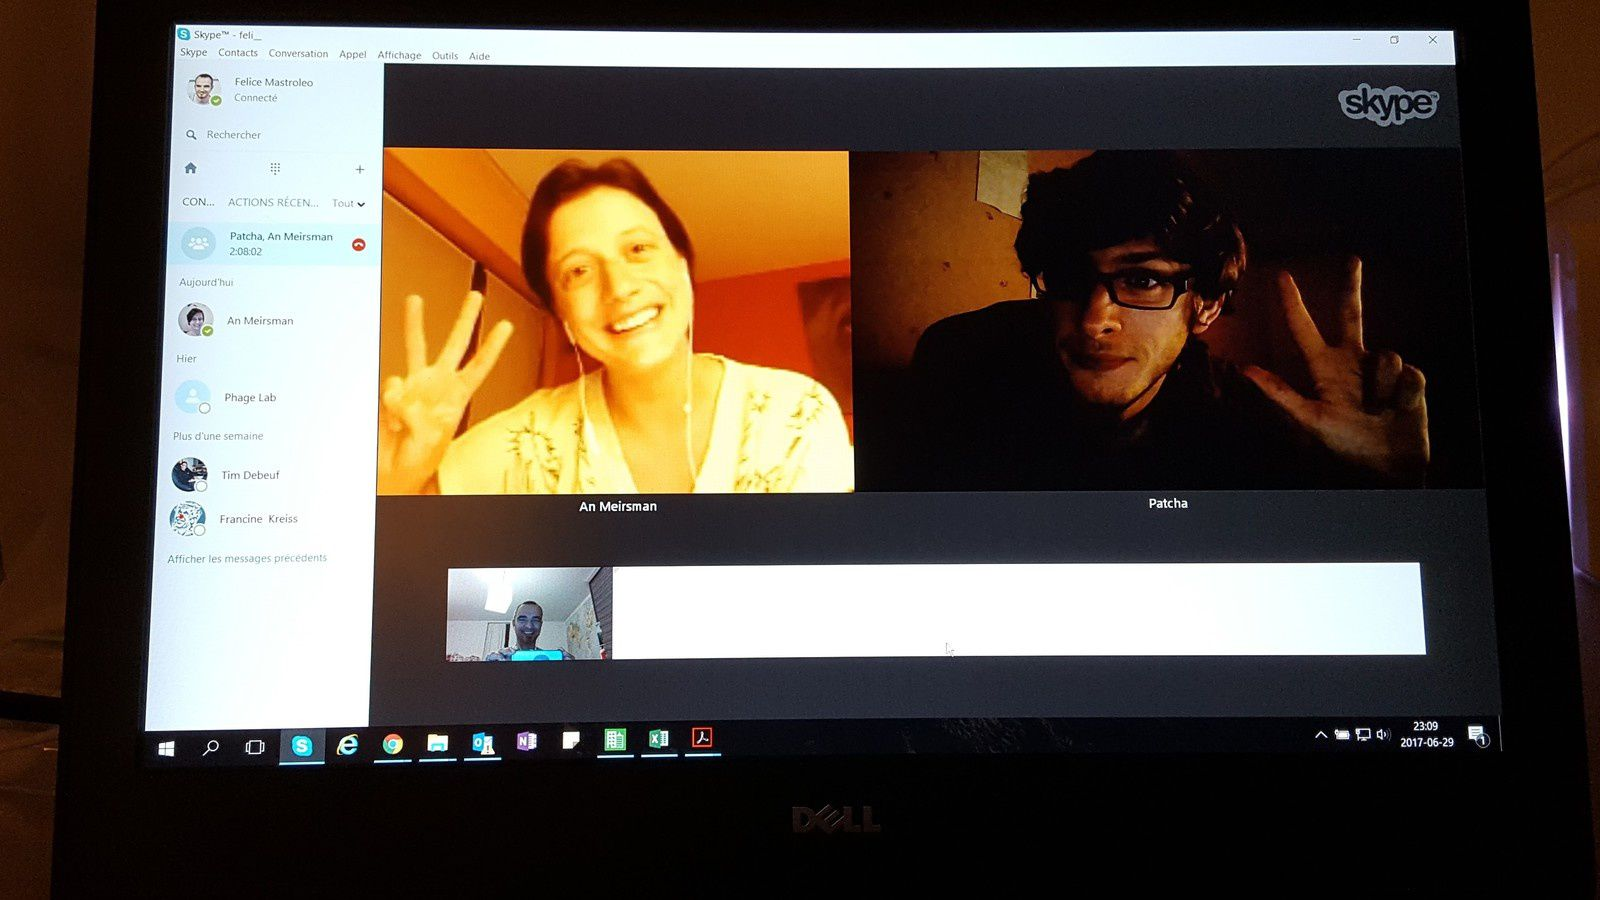 Successful Skype meeting yesterday :D